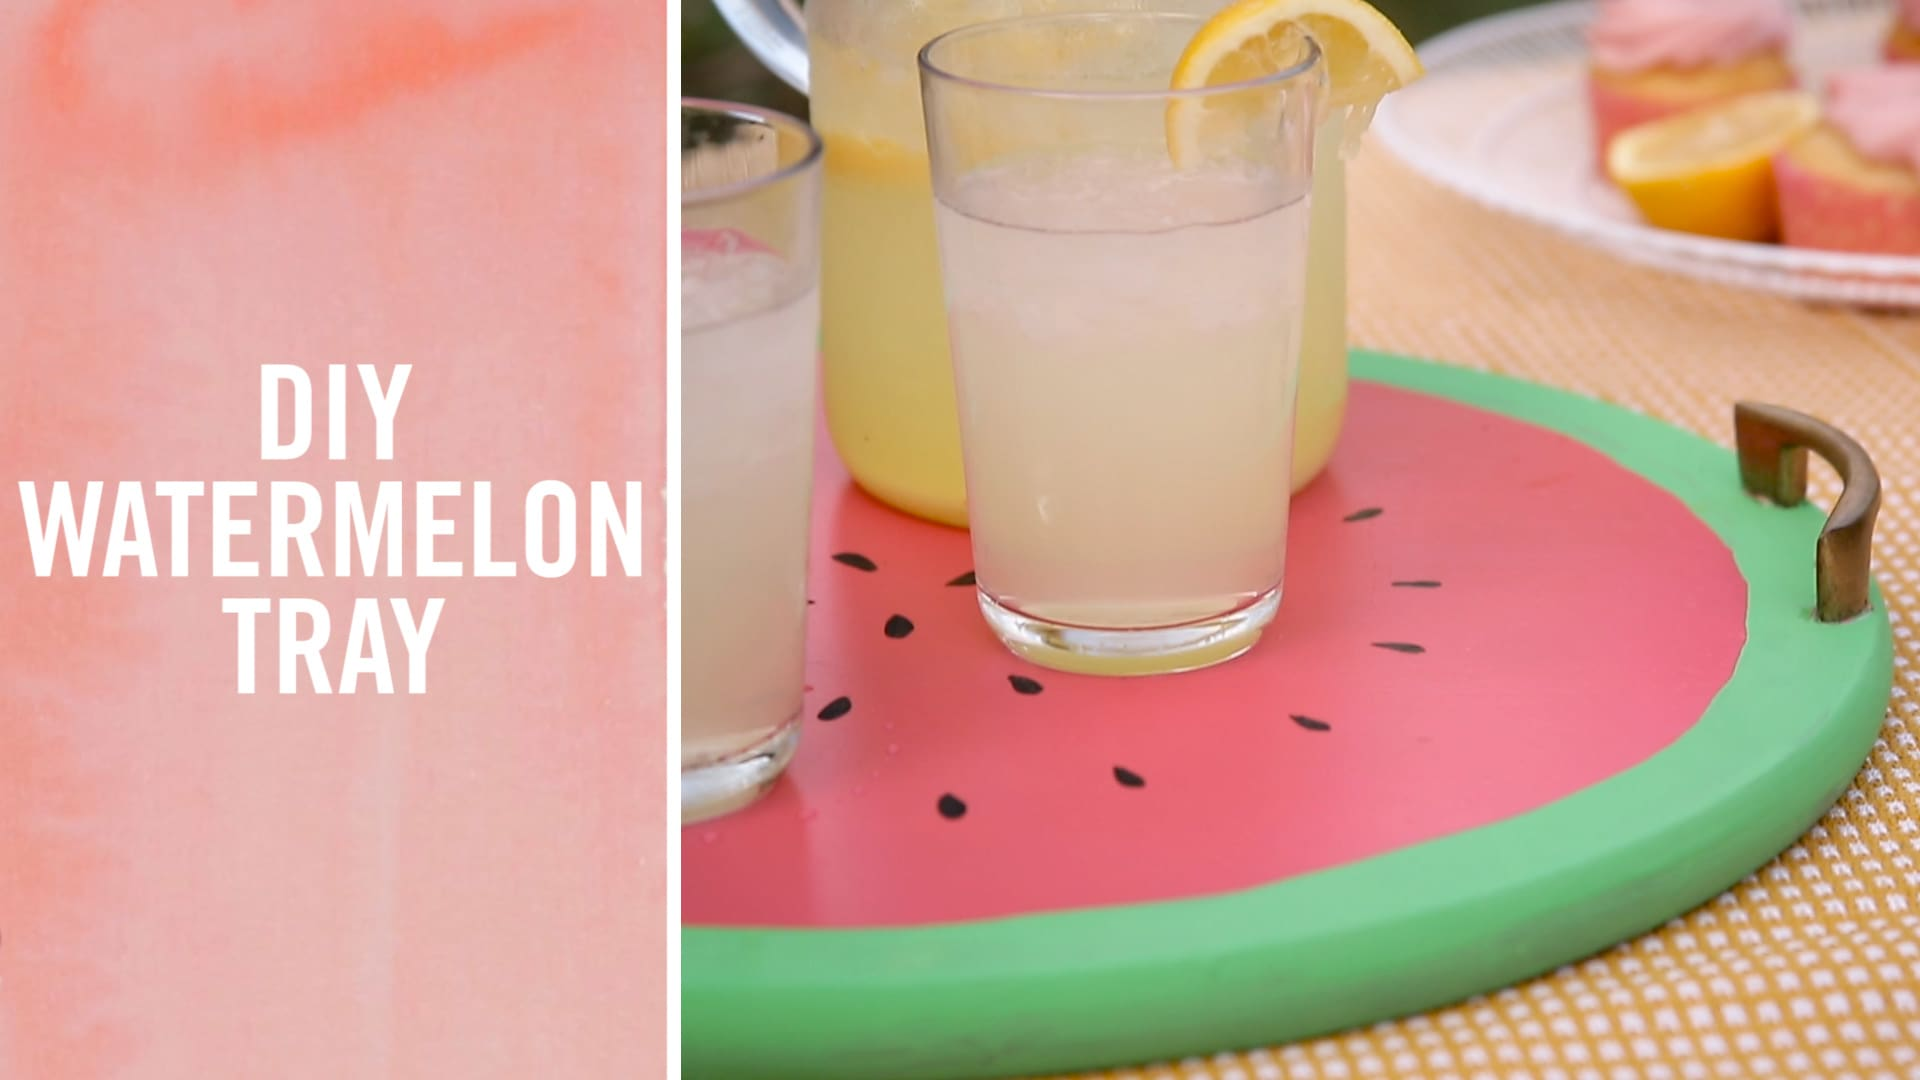 DIY Watermelon Tray | Babble DIYY Lego Kit | Summer Survival Hacks Lego Kit | Summer Survival Hacks